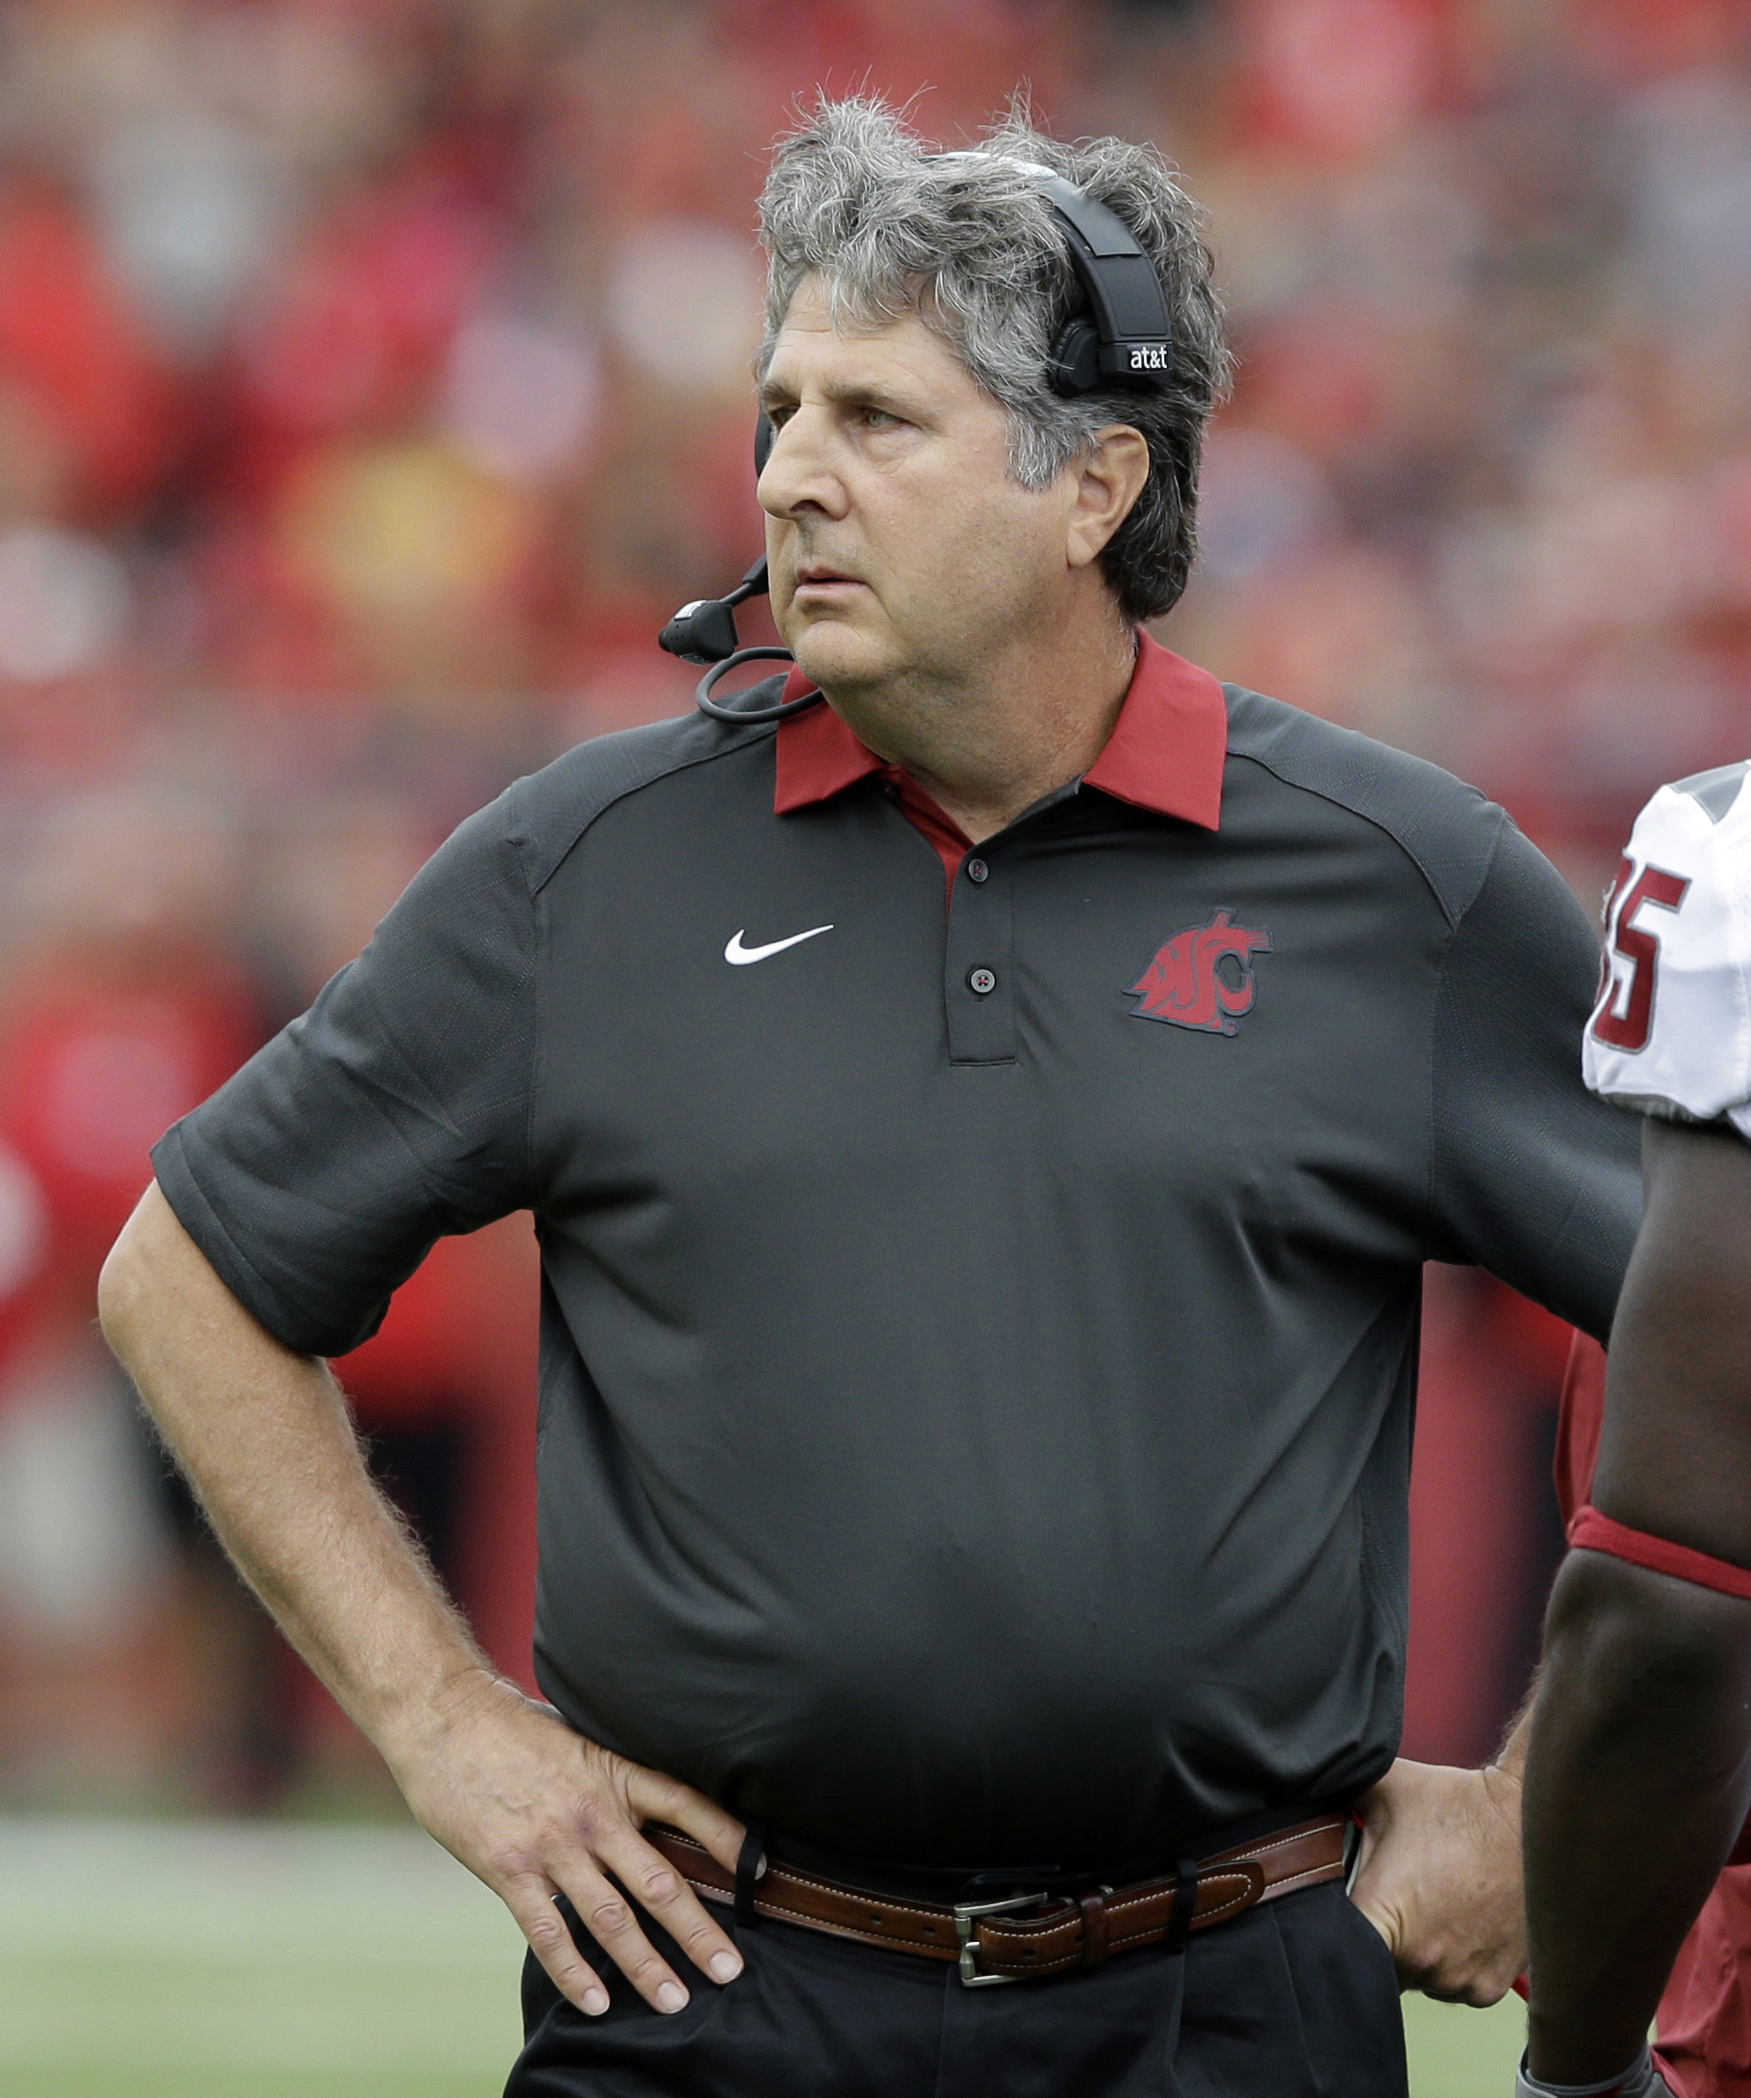 FILE - In this Sept. 12, 2015, file photo, Washington State head coach Mike Leach stands on the sidelines during an NCAA college football game against Rutgers in Piscataway, N.J. Washington State plays at Arizona State on Saturday night.  (AP Photo/Mel Ev